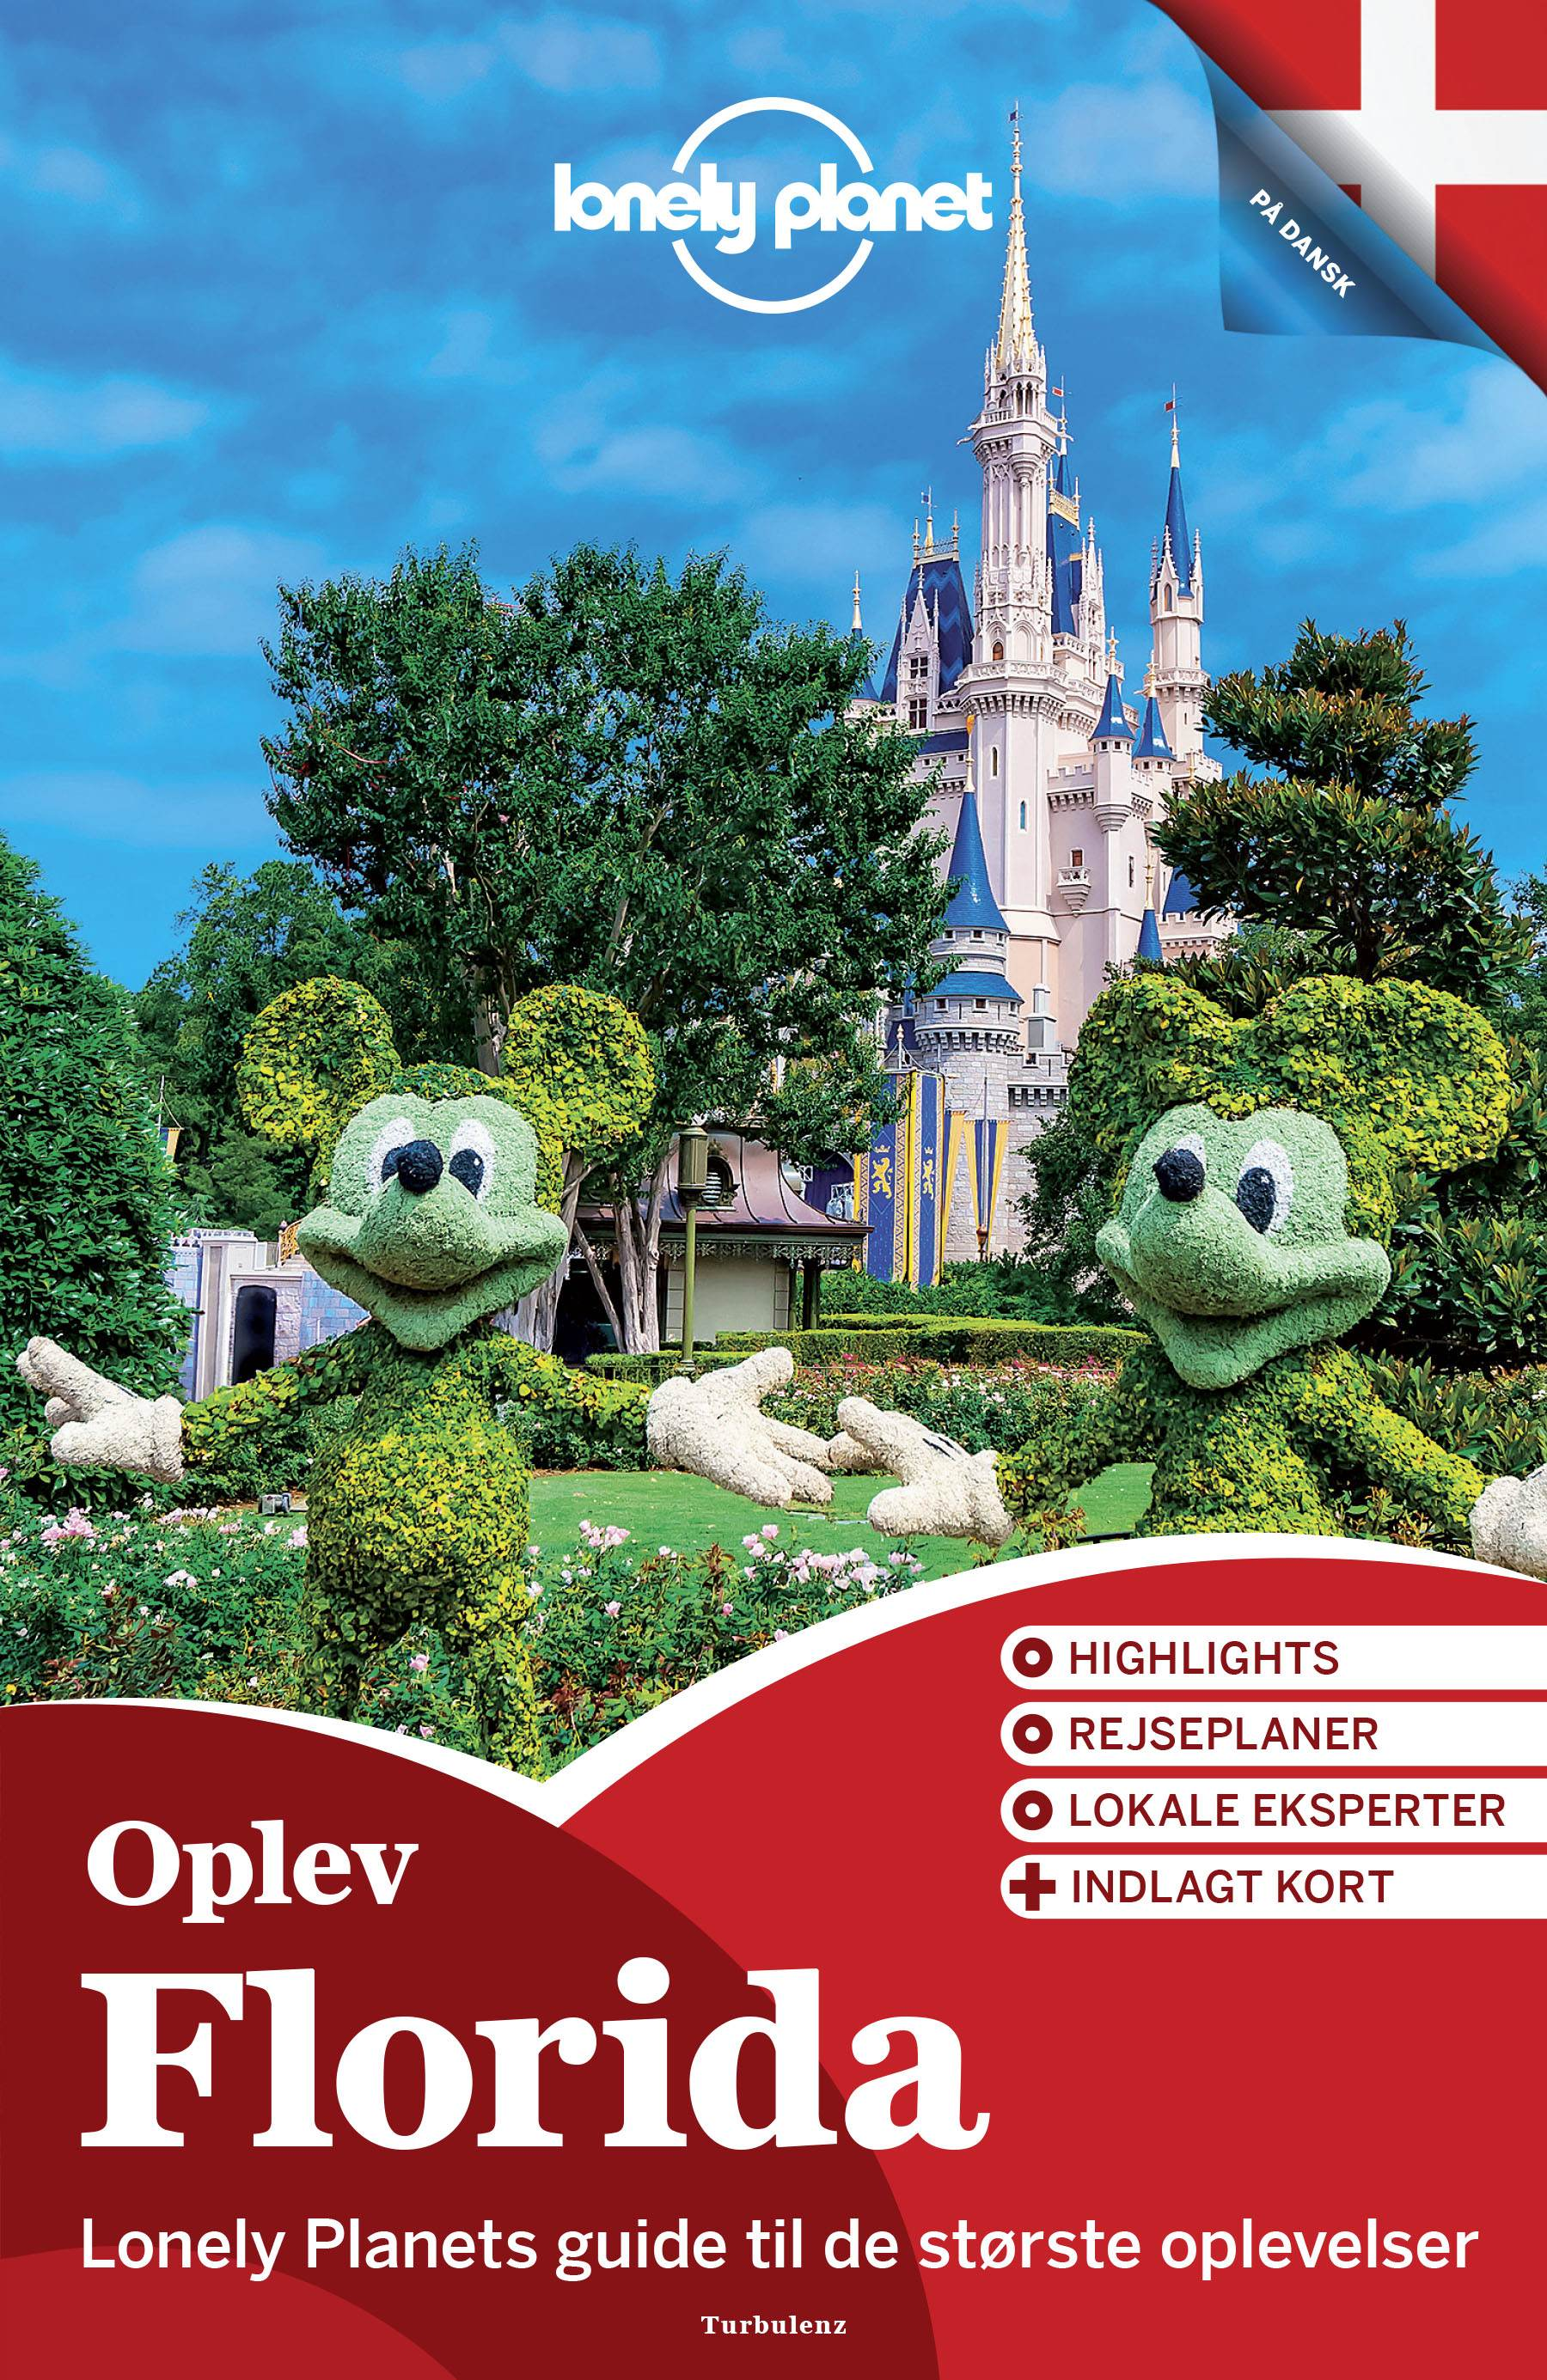 Oplev Florida (Lonely Planet)